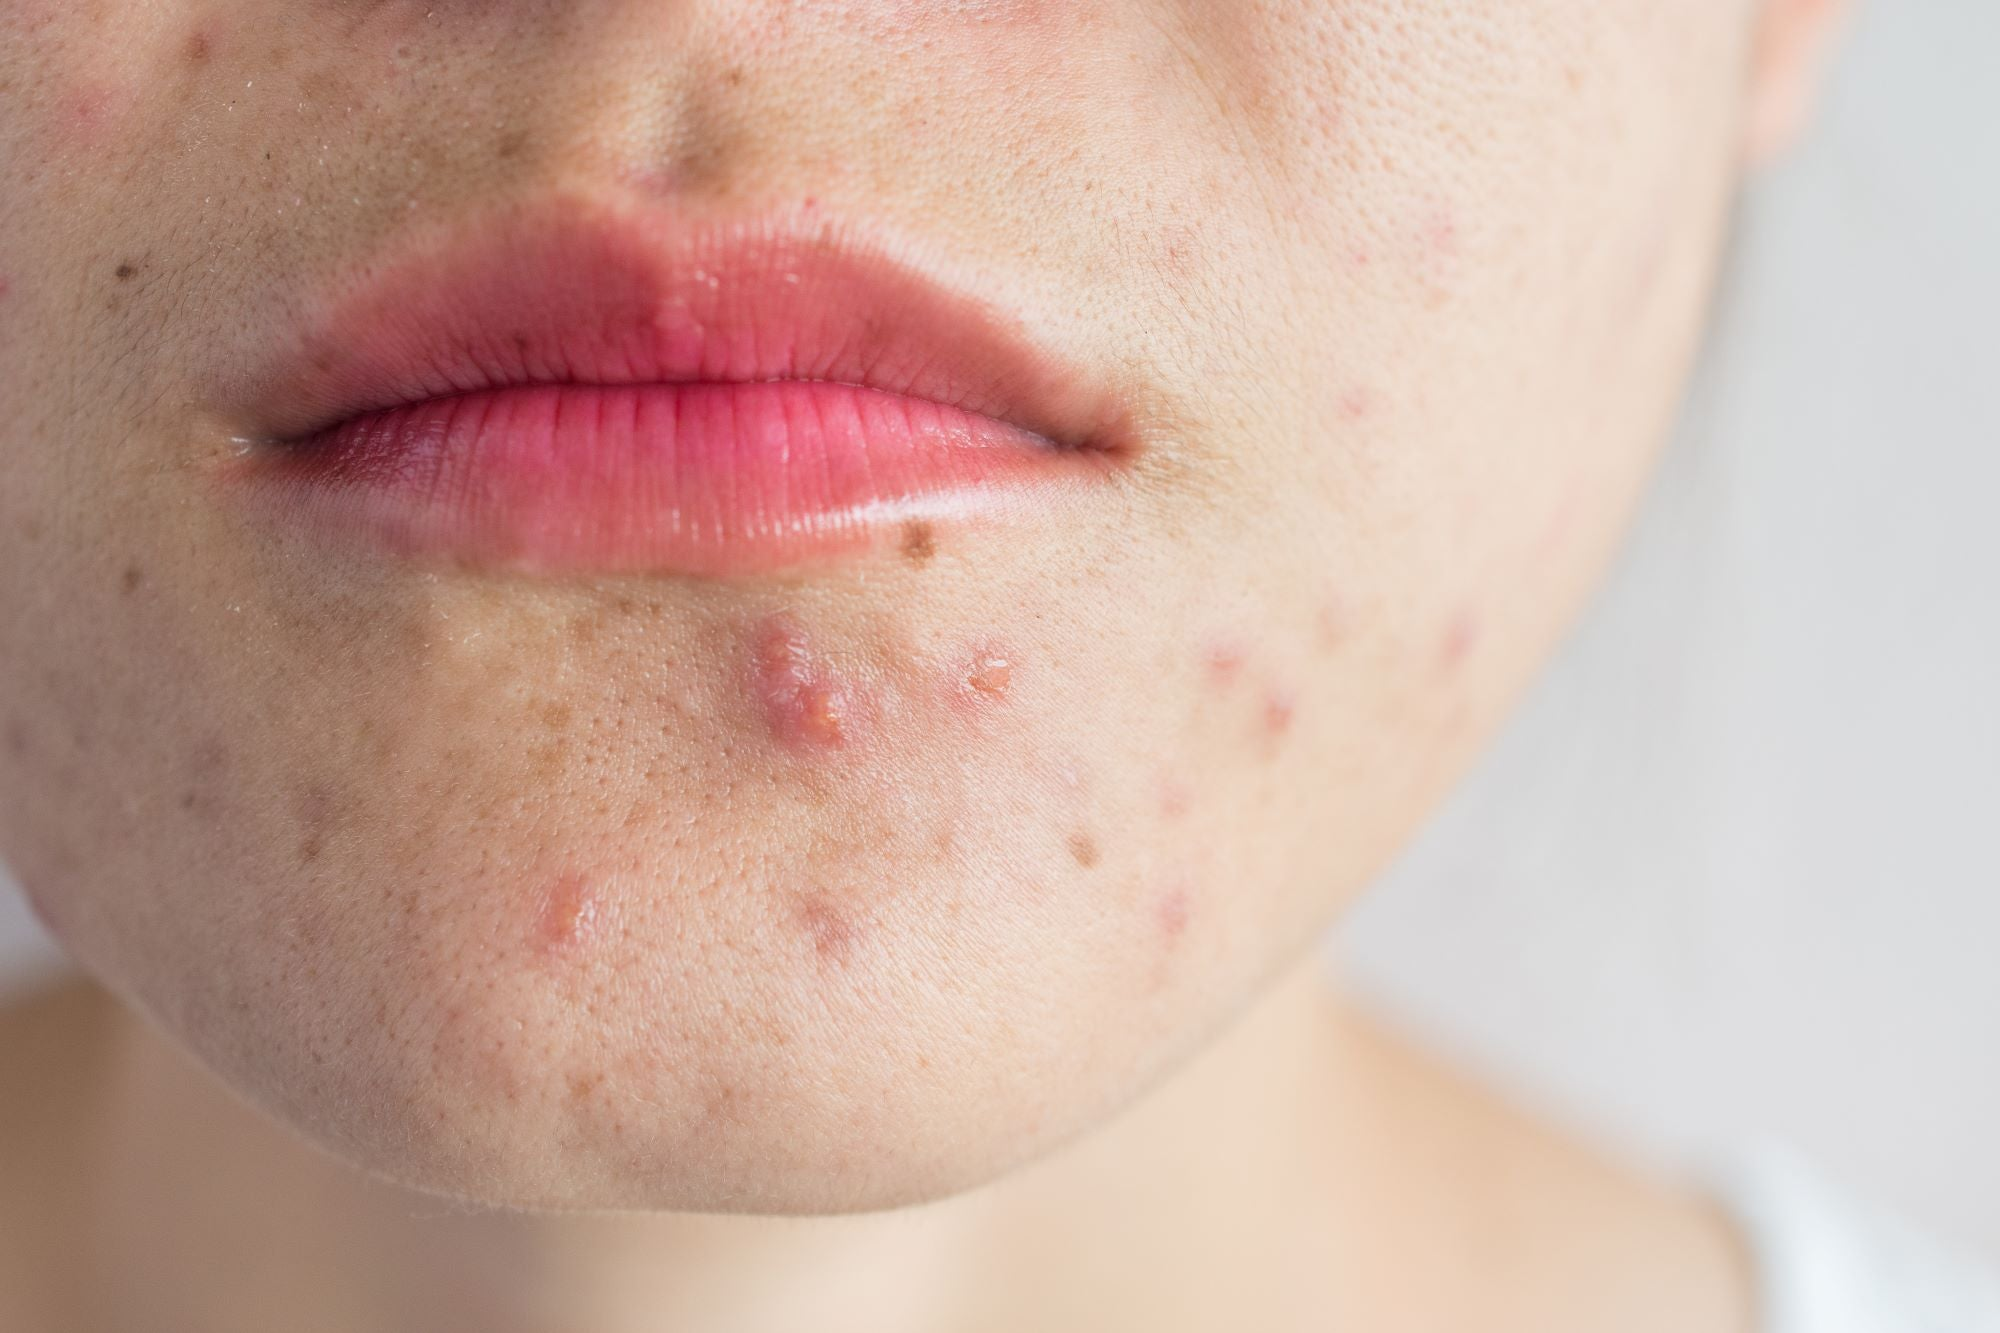 Natural Acne + Acne Scars Treatment Products For Teens And Adults